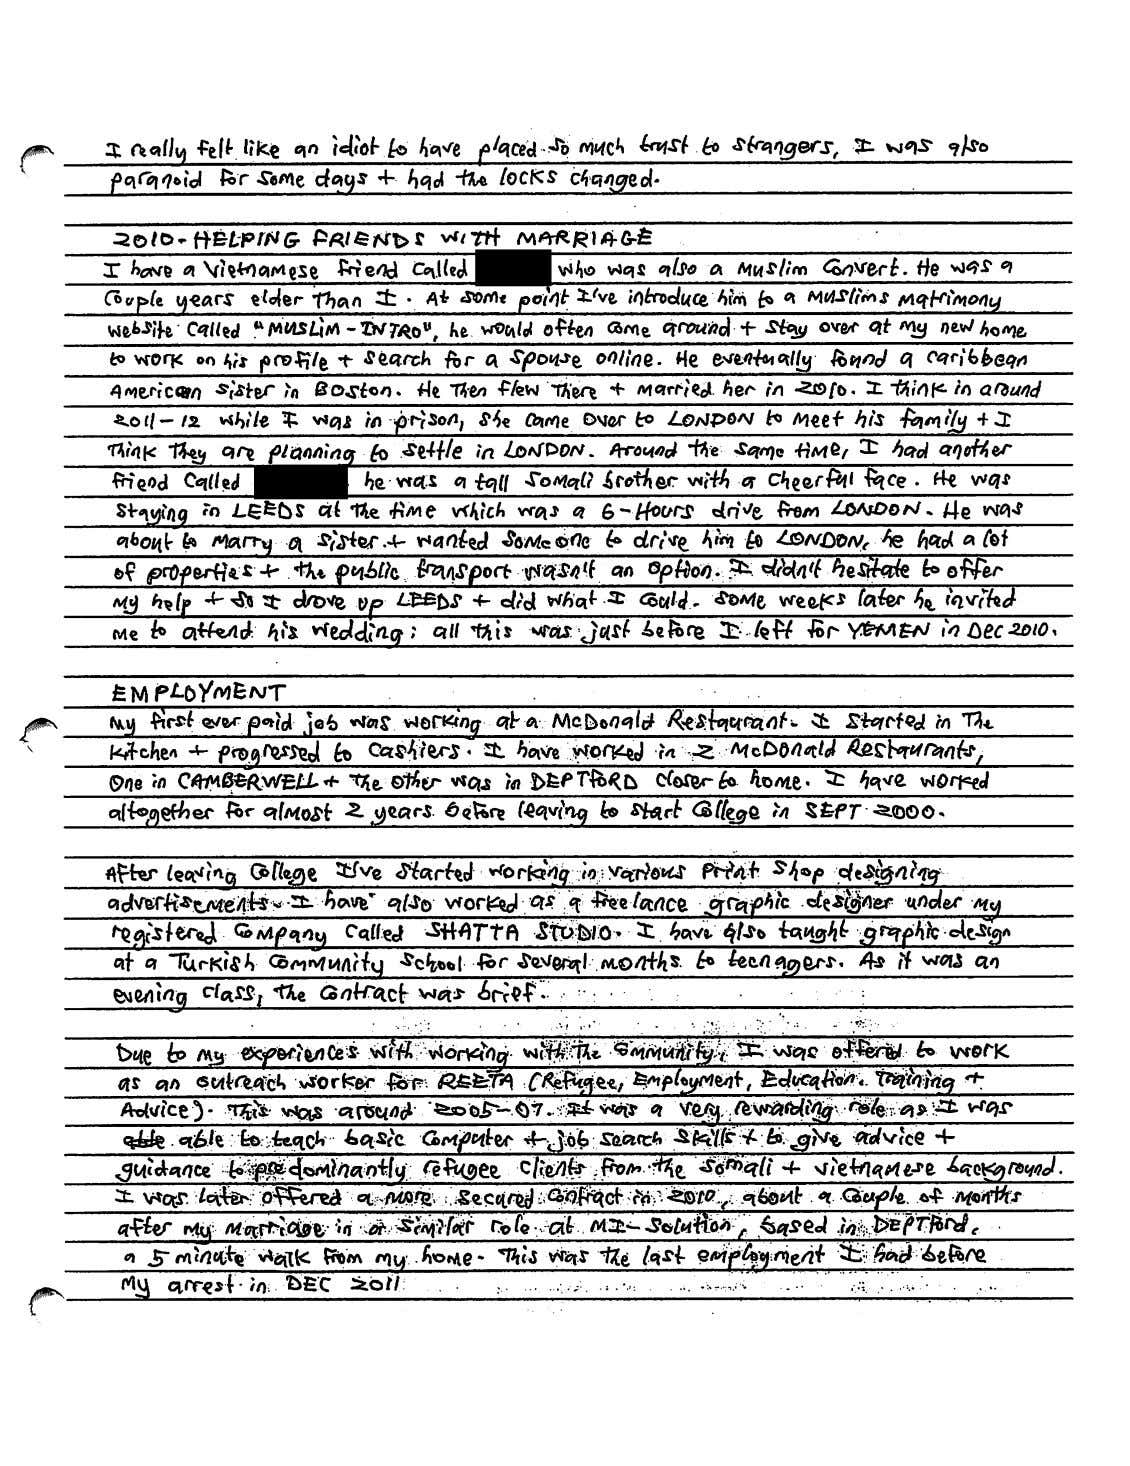 Case 1:12-cr-00423-AJN Document 111-1 Filed 05/09/16 Page 6 of 15